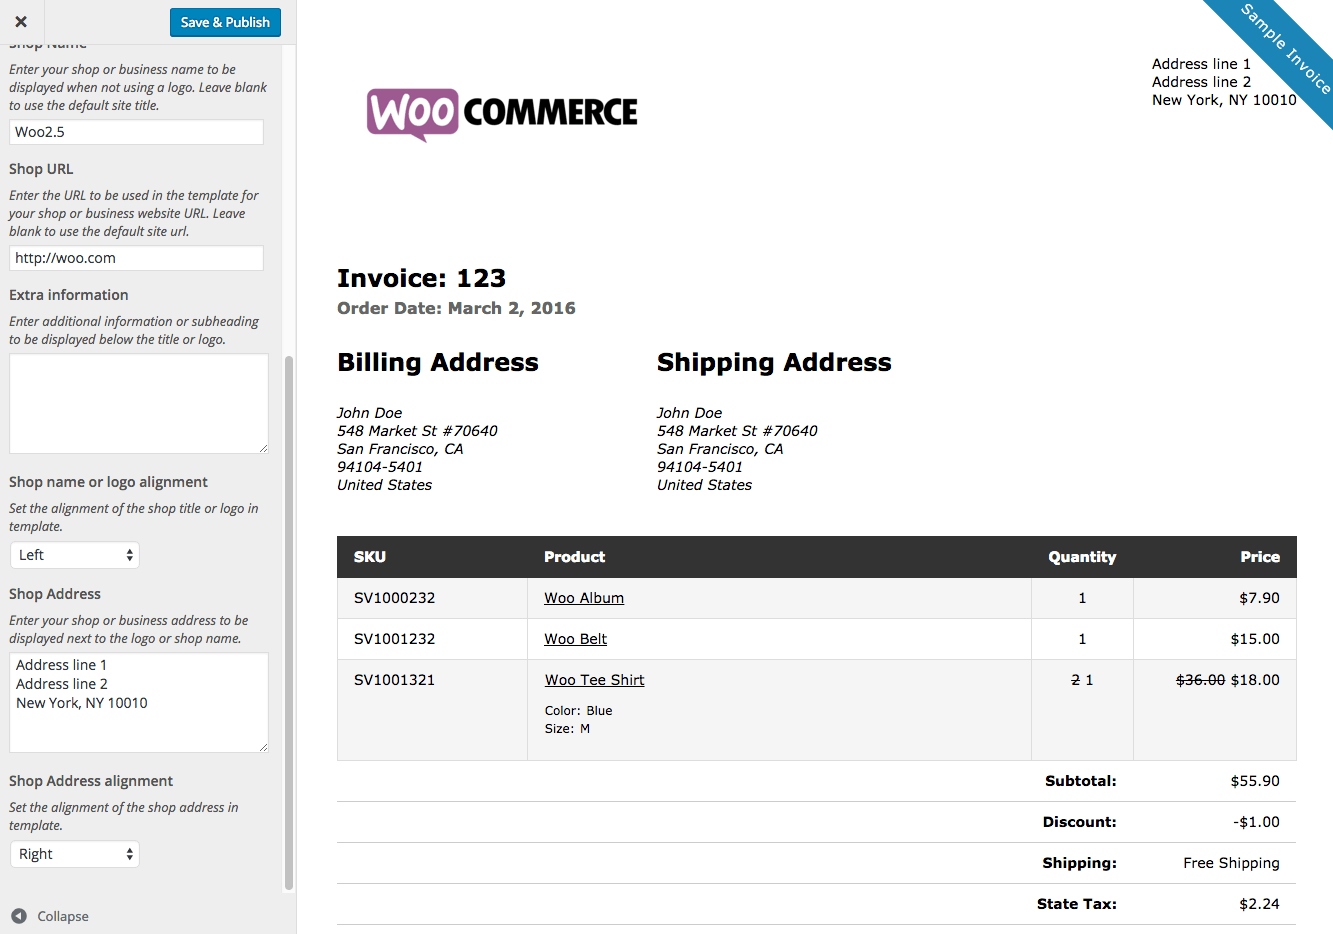 Indianaparanormalus  Ravishing Print Invoices Amp Packing Lists  Woocommerce With Fetching Woocommerce Print Invoices  Packing Lists Customizer With Lovely Quickbooks Invoice Templates Also Hvac Invoices In Addition How To Send An Invoice On Paypal And Template Invoice As Well As Generic Invoice Additionally Google Invoice Maker From Woocommercecom With Indianaparanormalus  Fetching Print Invoices Amp Packing Lists  Woocommerce With Lovely Woocommerce Print Invoices  Packing Lists Customizer And Ravishing Quickbooks Invoice Templates Also Hvac Invoices In Addition How To Send An Invoice On Paypal From Woocommercecom